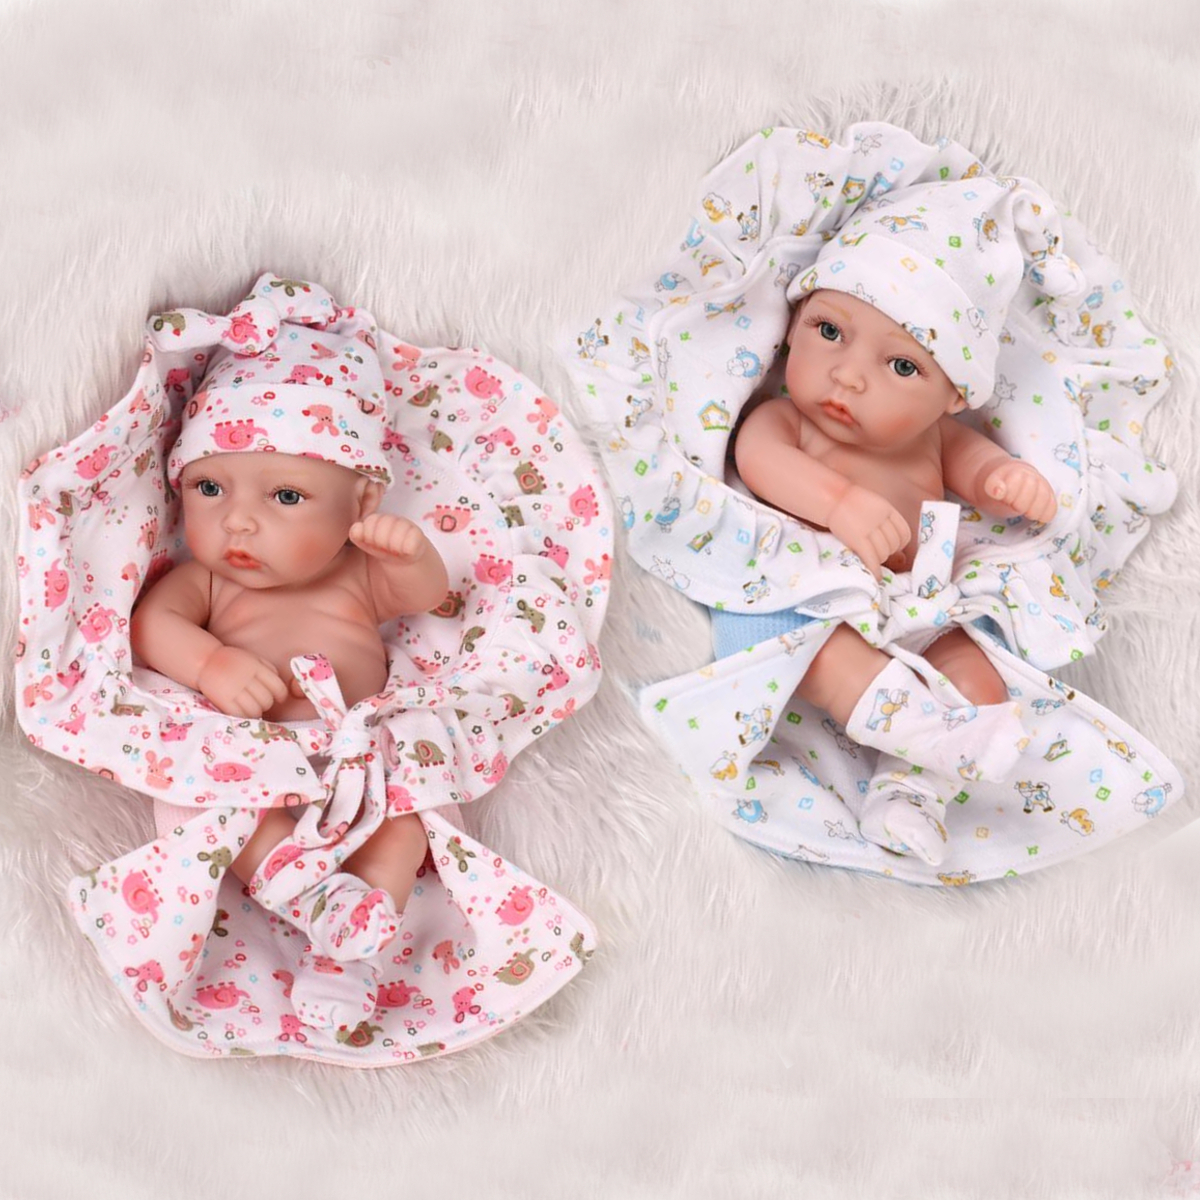 2pcs 10inch Lifelike Twins Baby Dolls Silicone Children Bath Toys Play House Toy